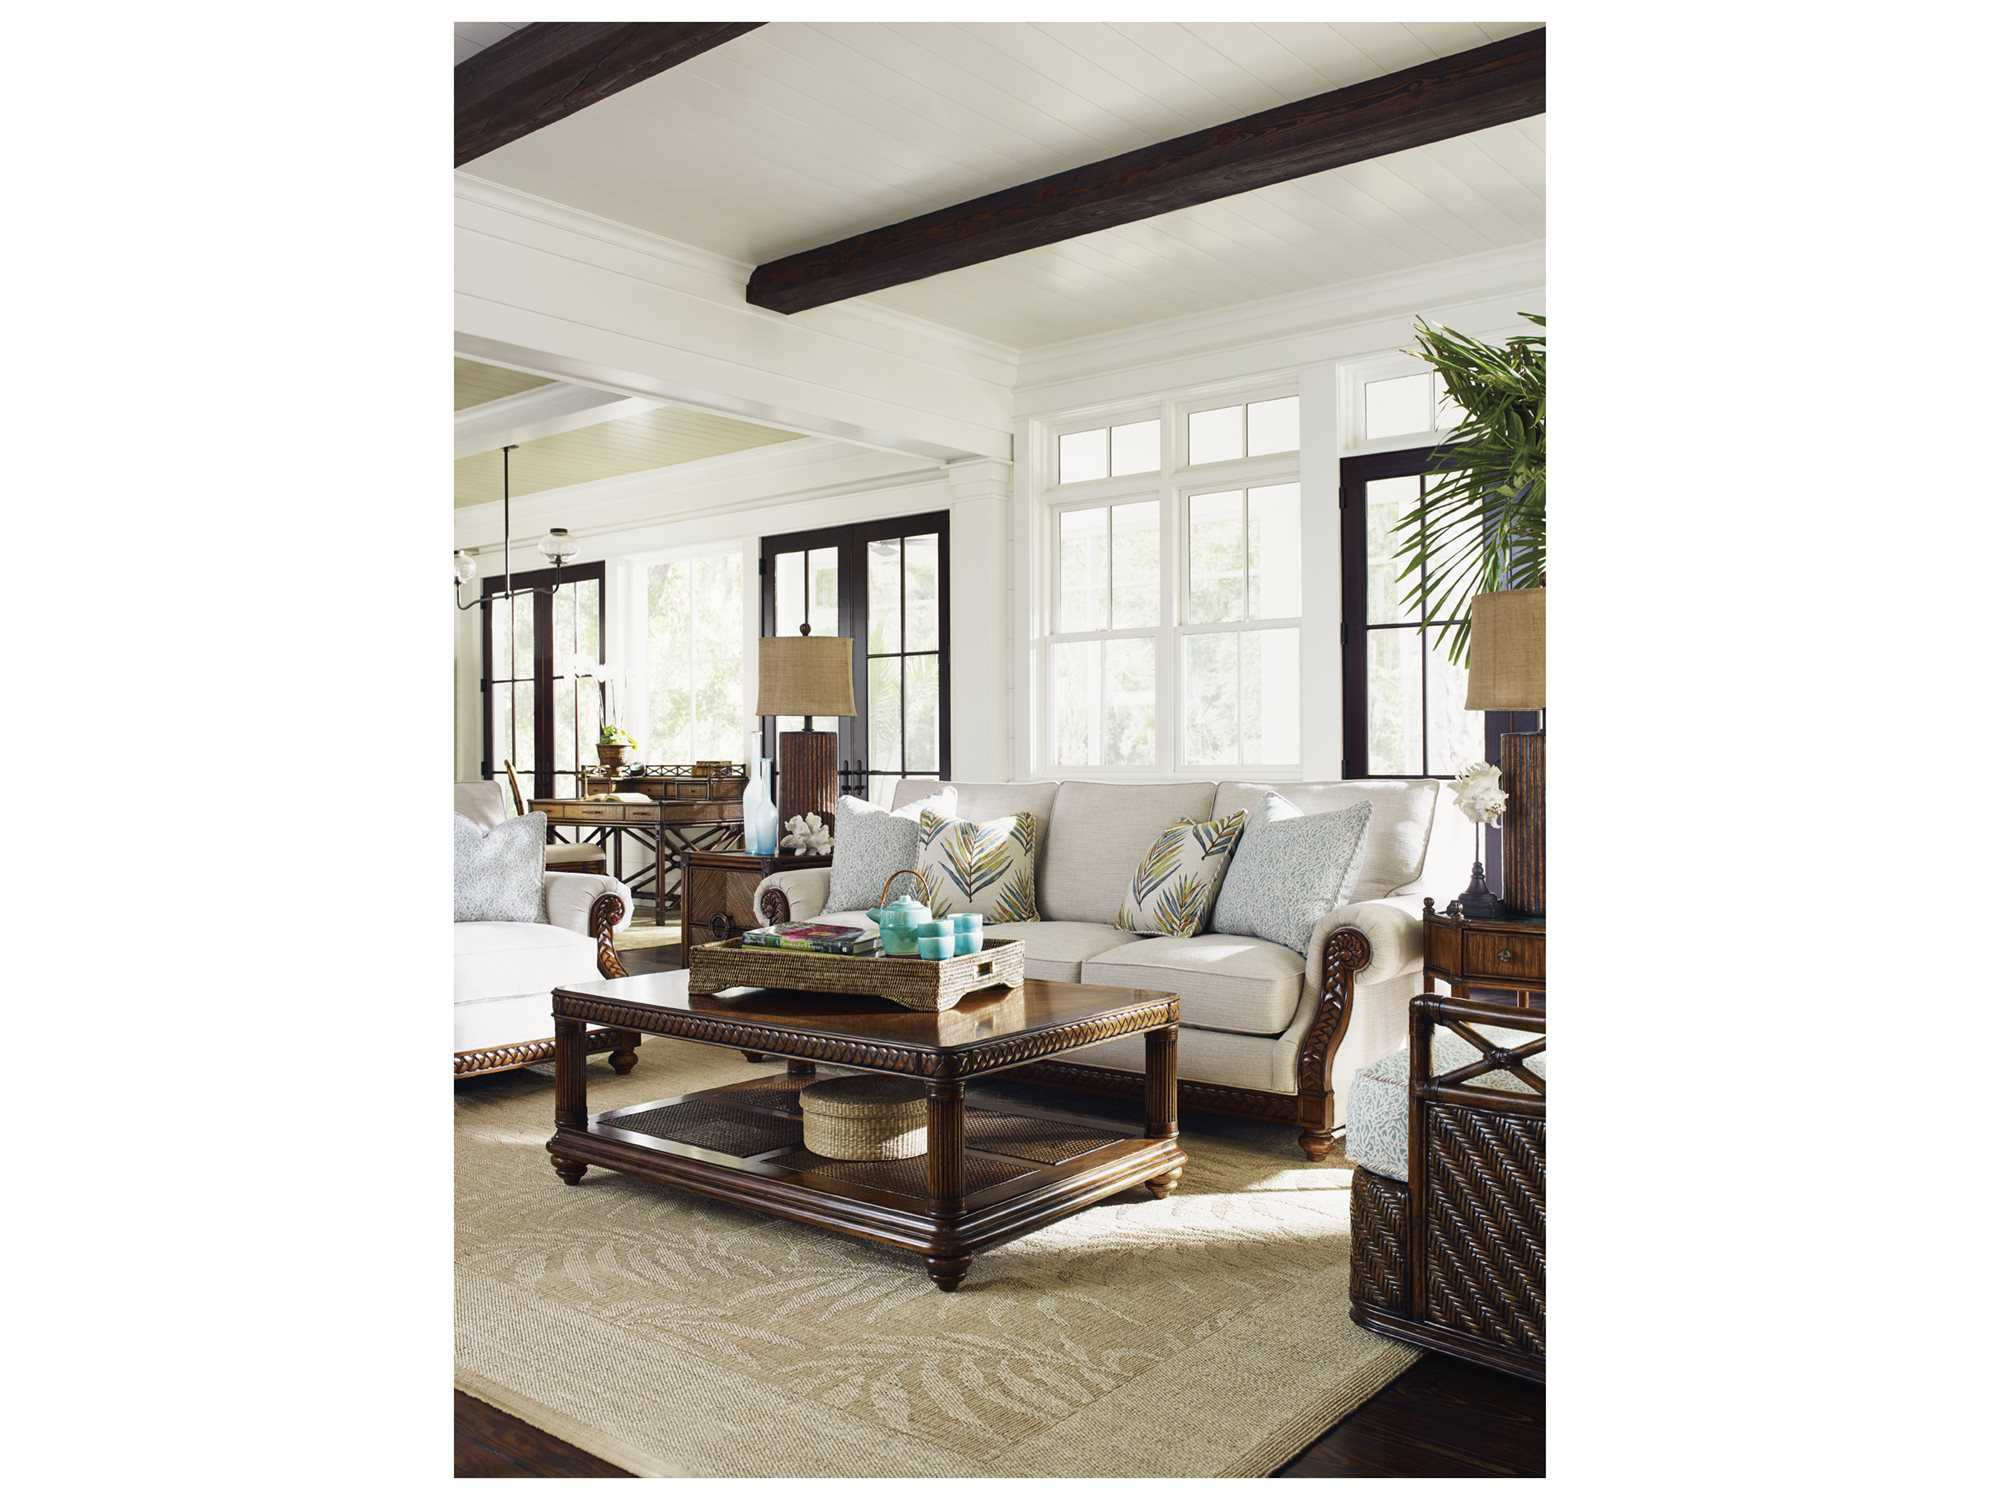 Tommy Bahama Living Room Set. What You Need For Dorm Room. Kids Room Design Image. Morgan Library Dining Room. Simple Sitting Room Decoration. Ebay Dining Room Furniture. Traditional Dining Room Table. Autodesk Room Design. Interior Color Schemes For Living Rooms